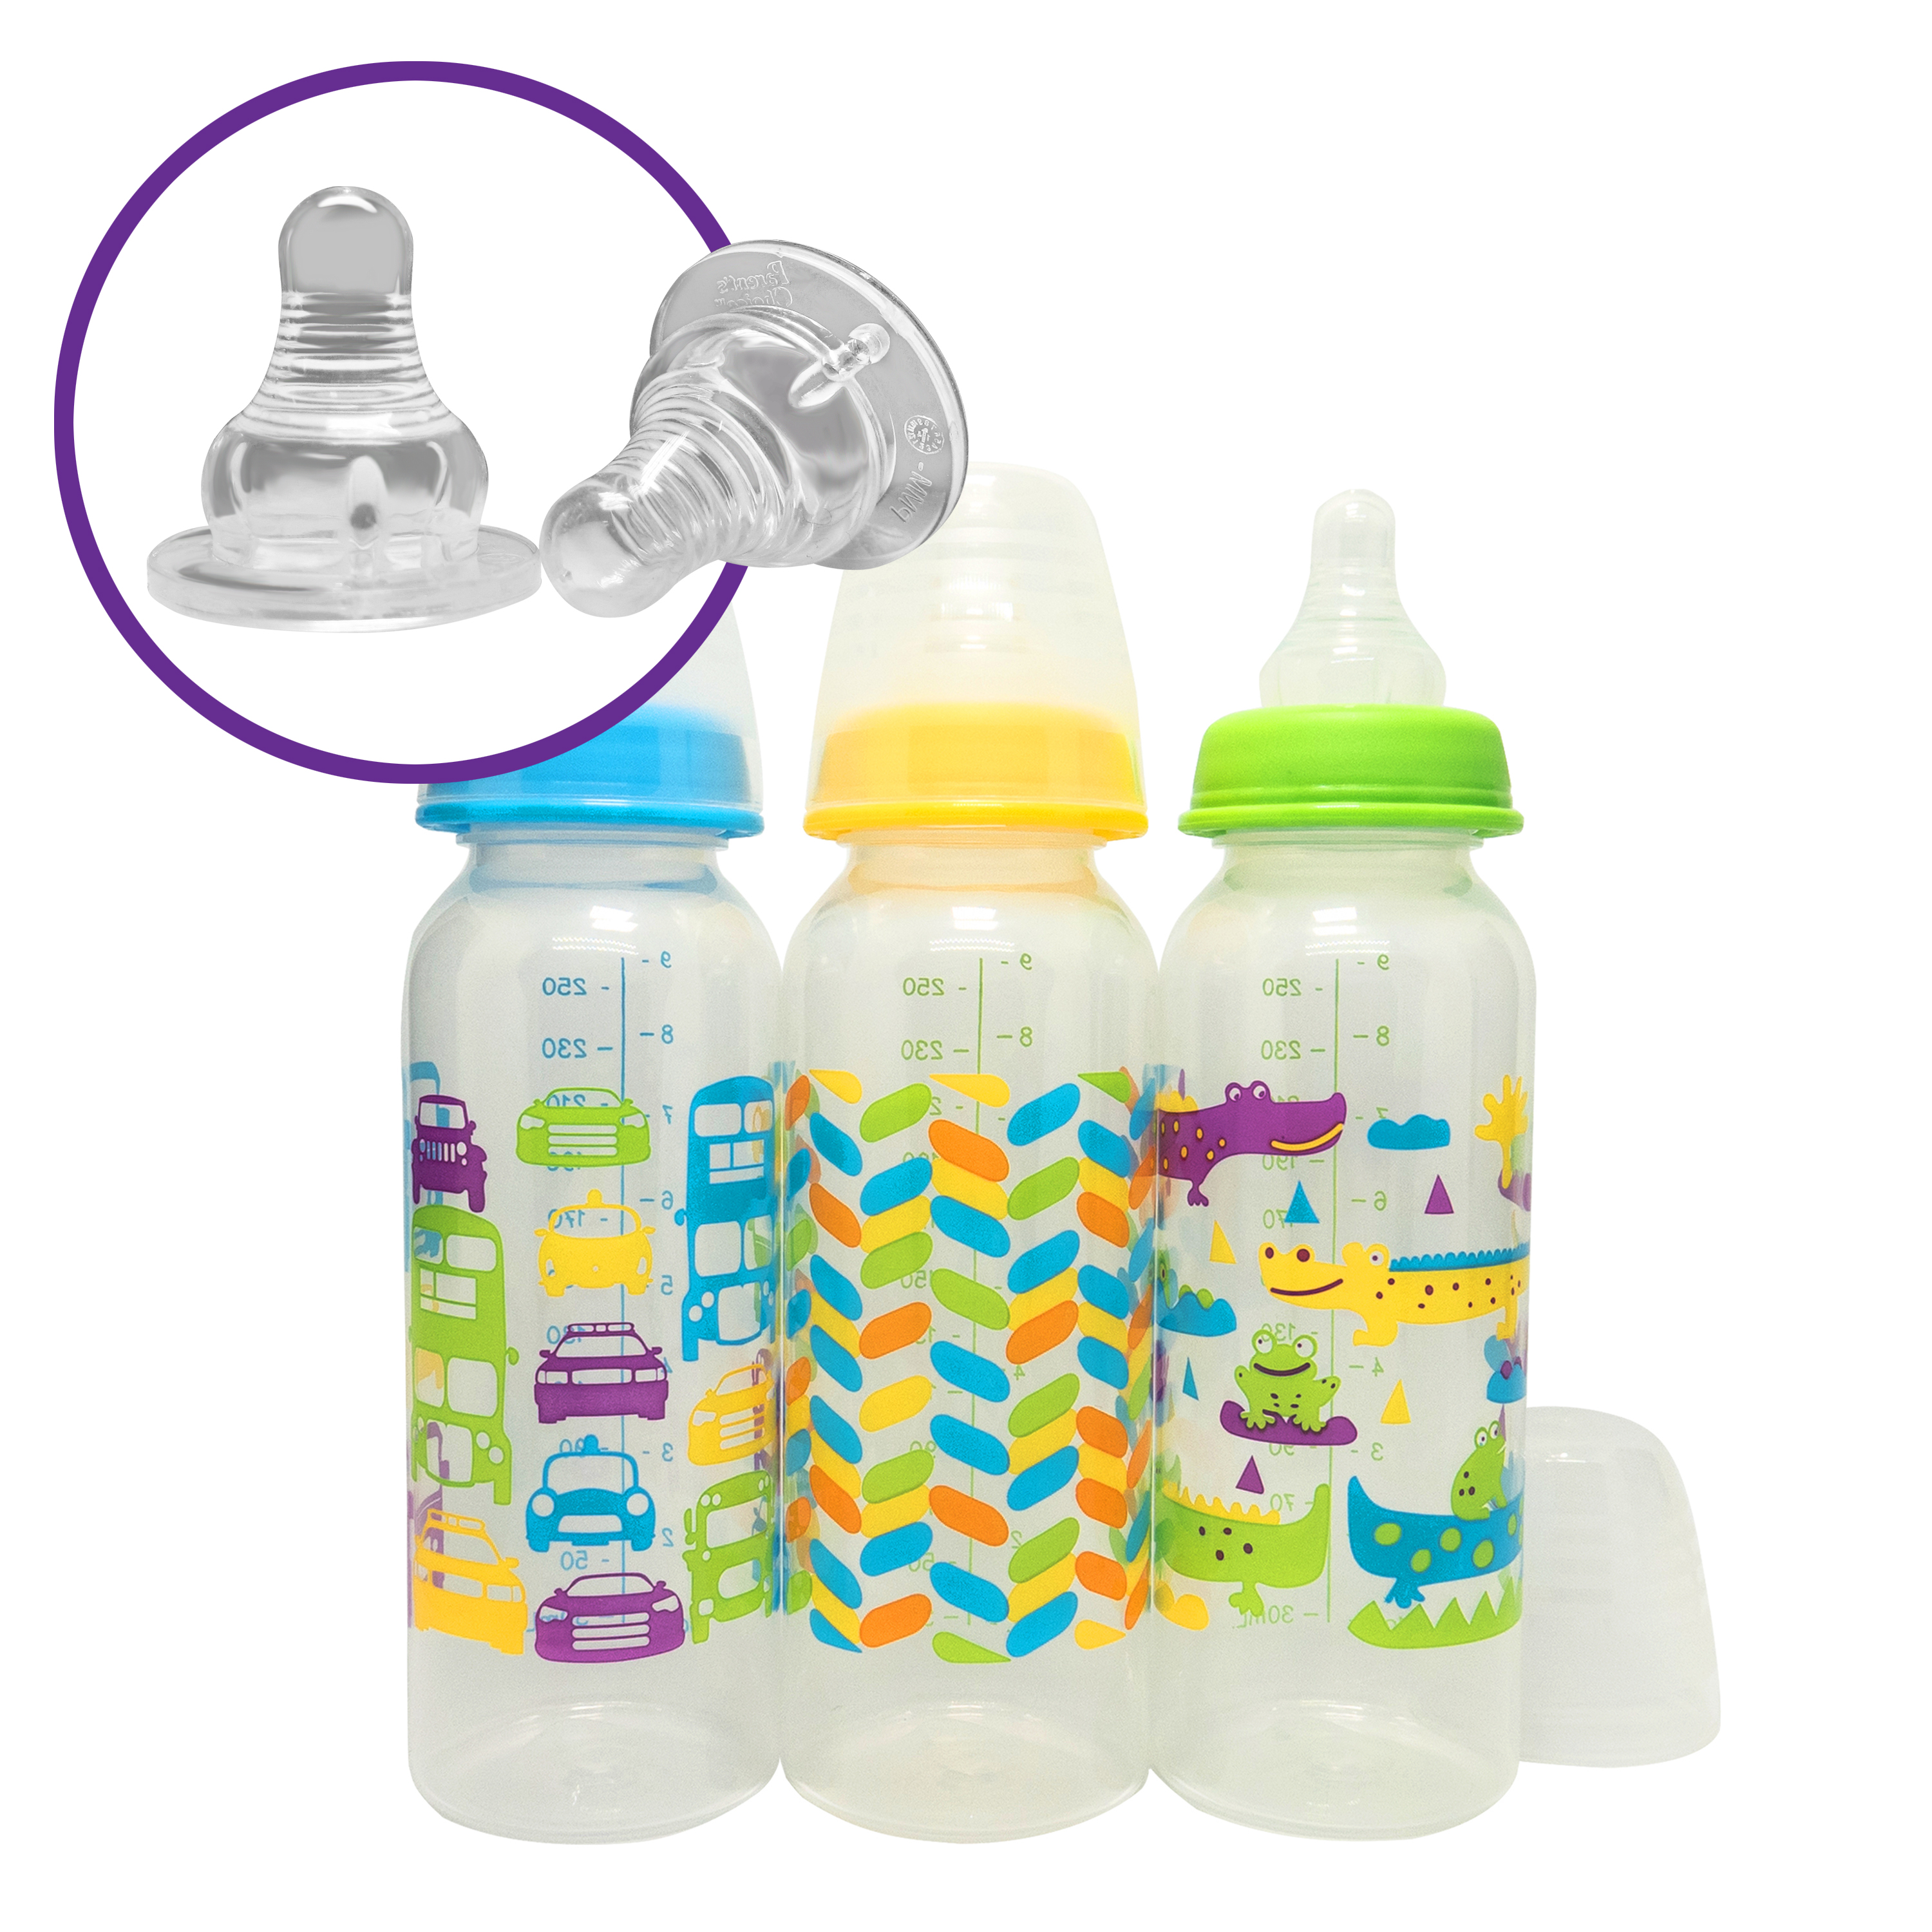 Parent's Choice BPA Free Baby Bottle - 9 oz (1 Bottle, Colors may vary)